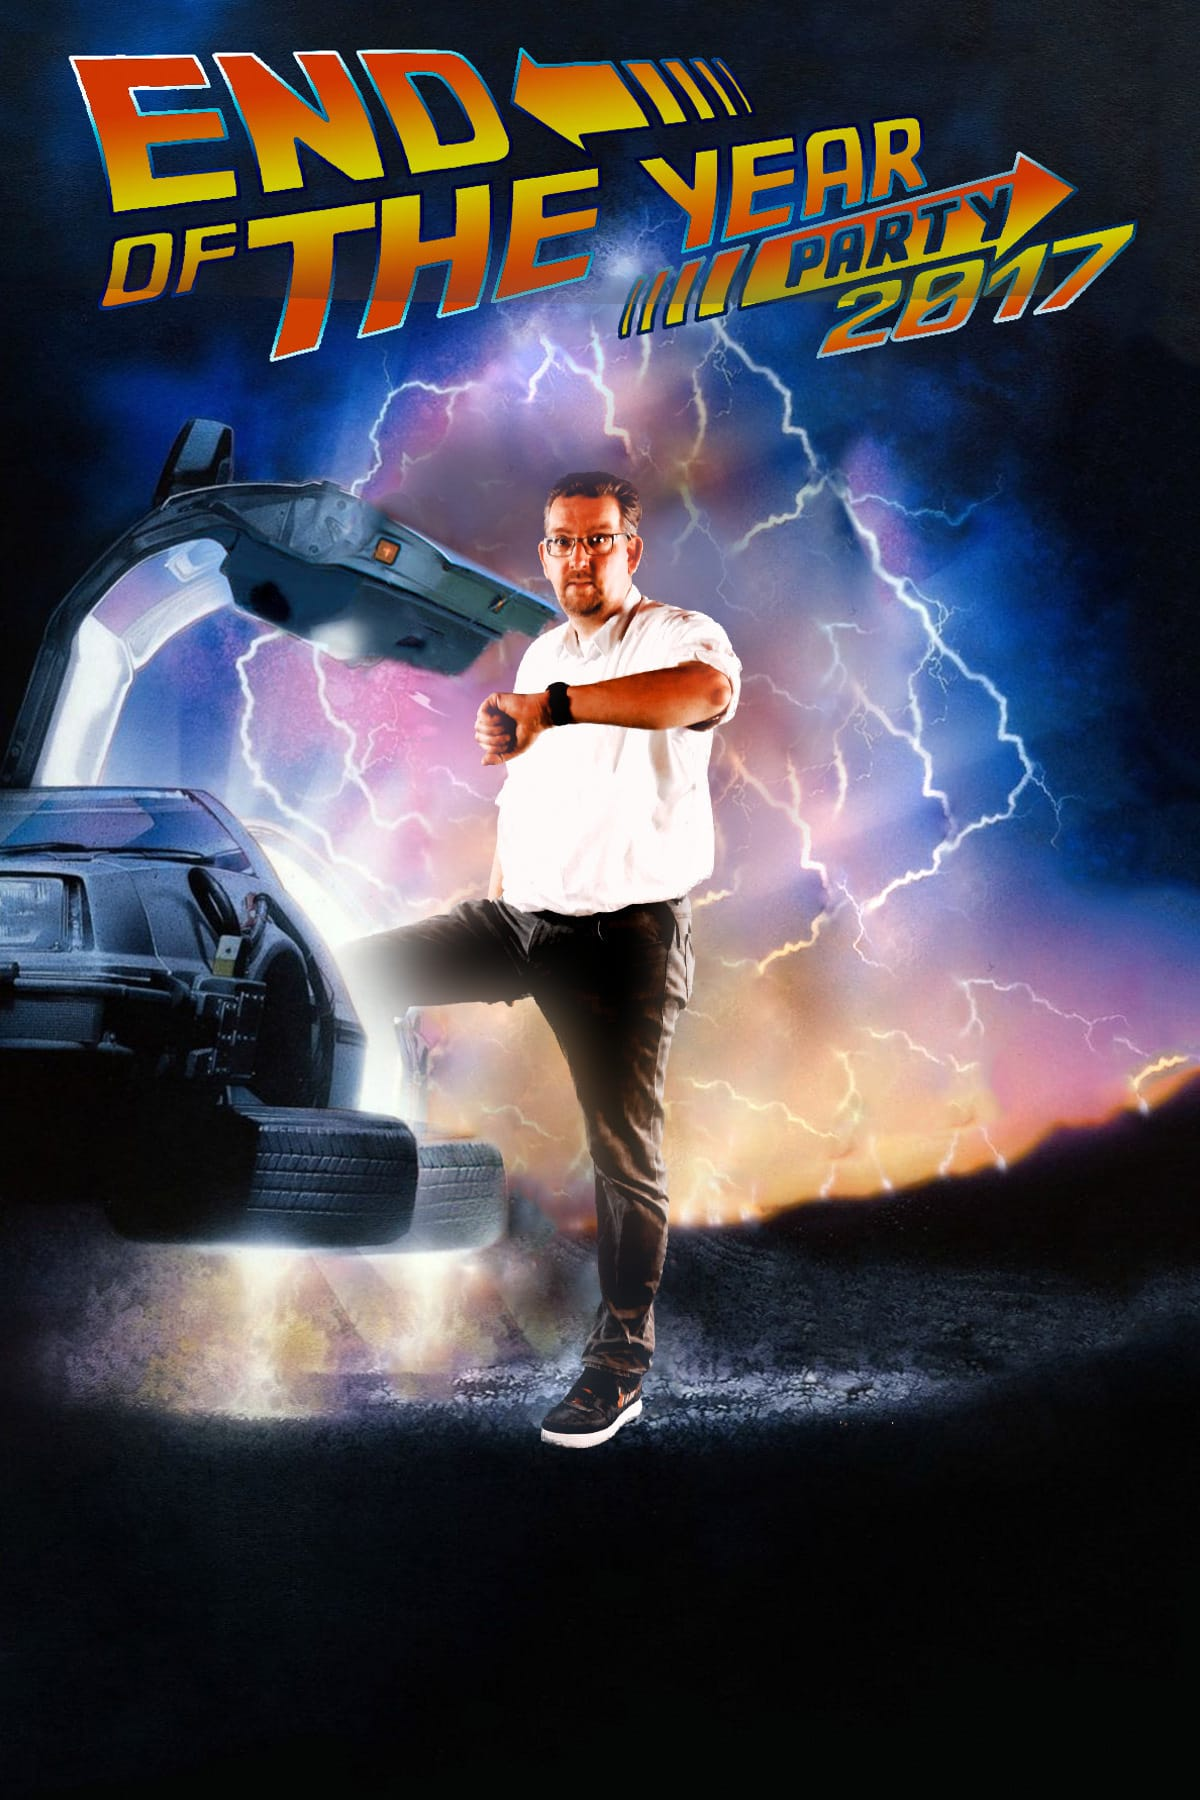 Green screen foto met Back to the future thema